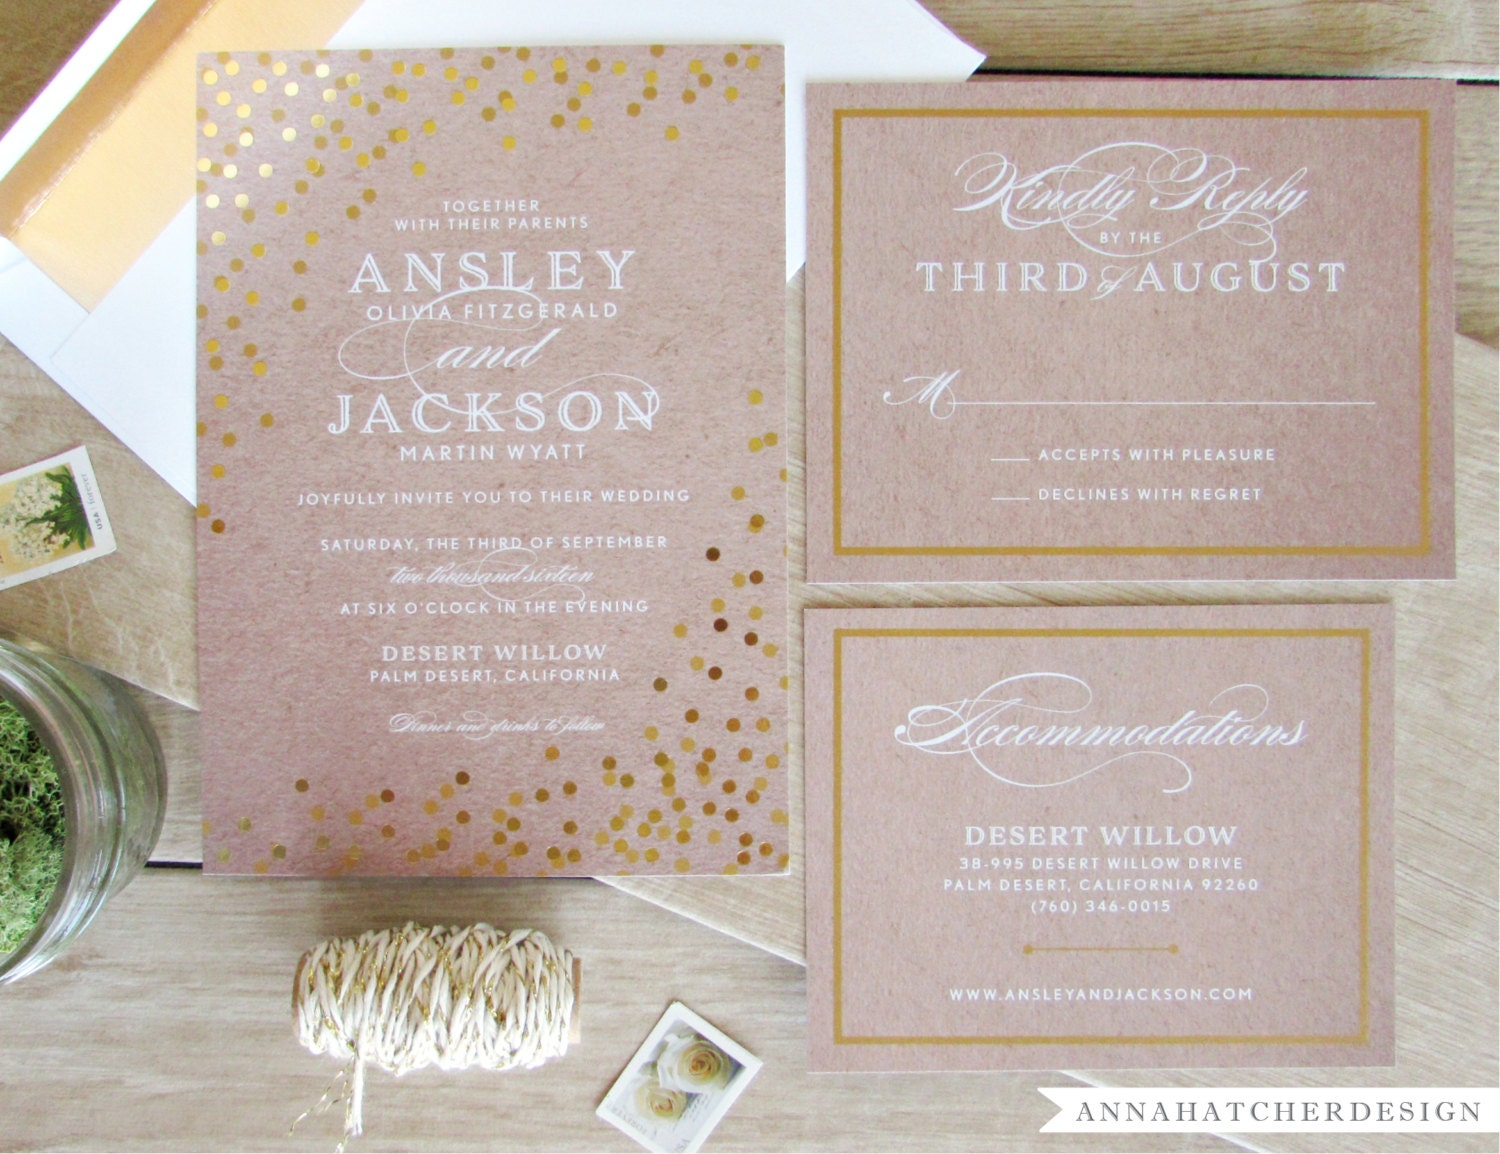 foil wedding invitations - 100 images - gold foil wedding ...